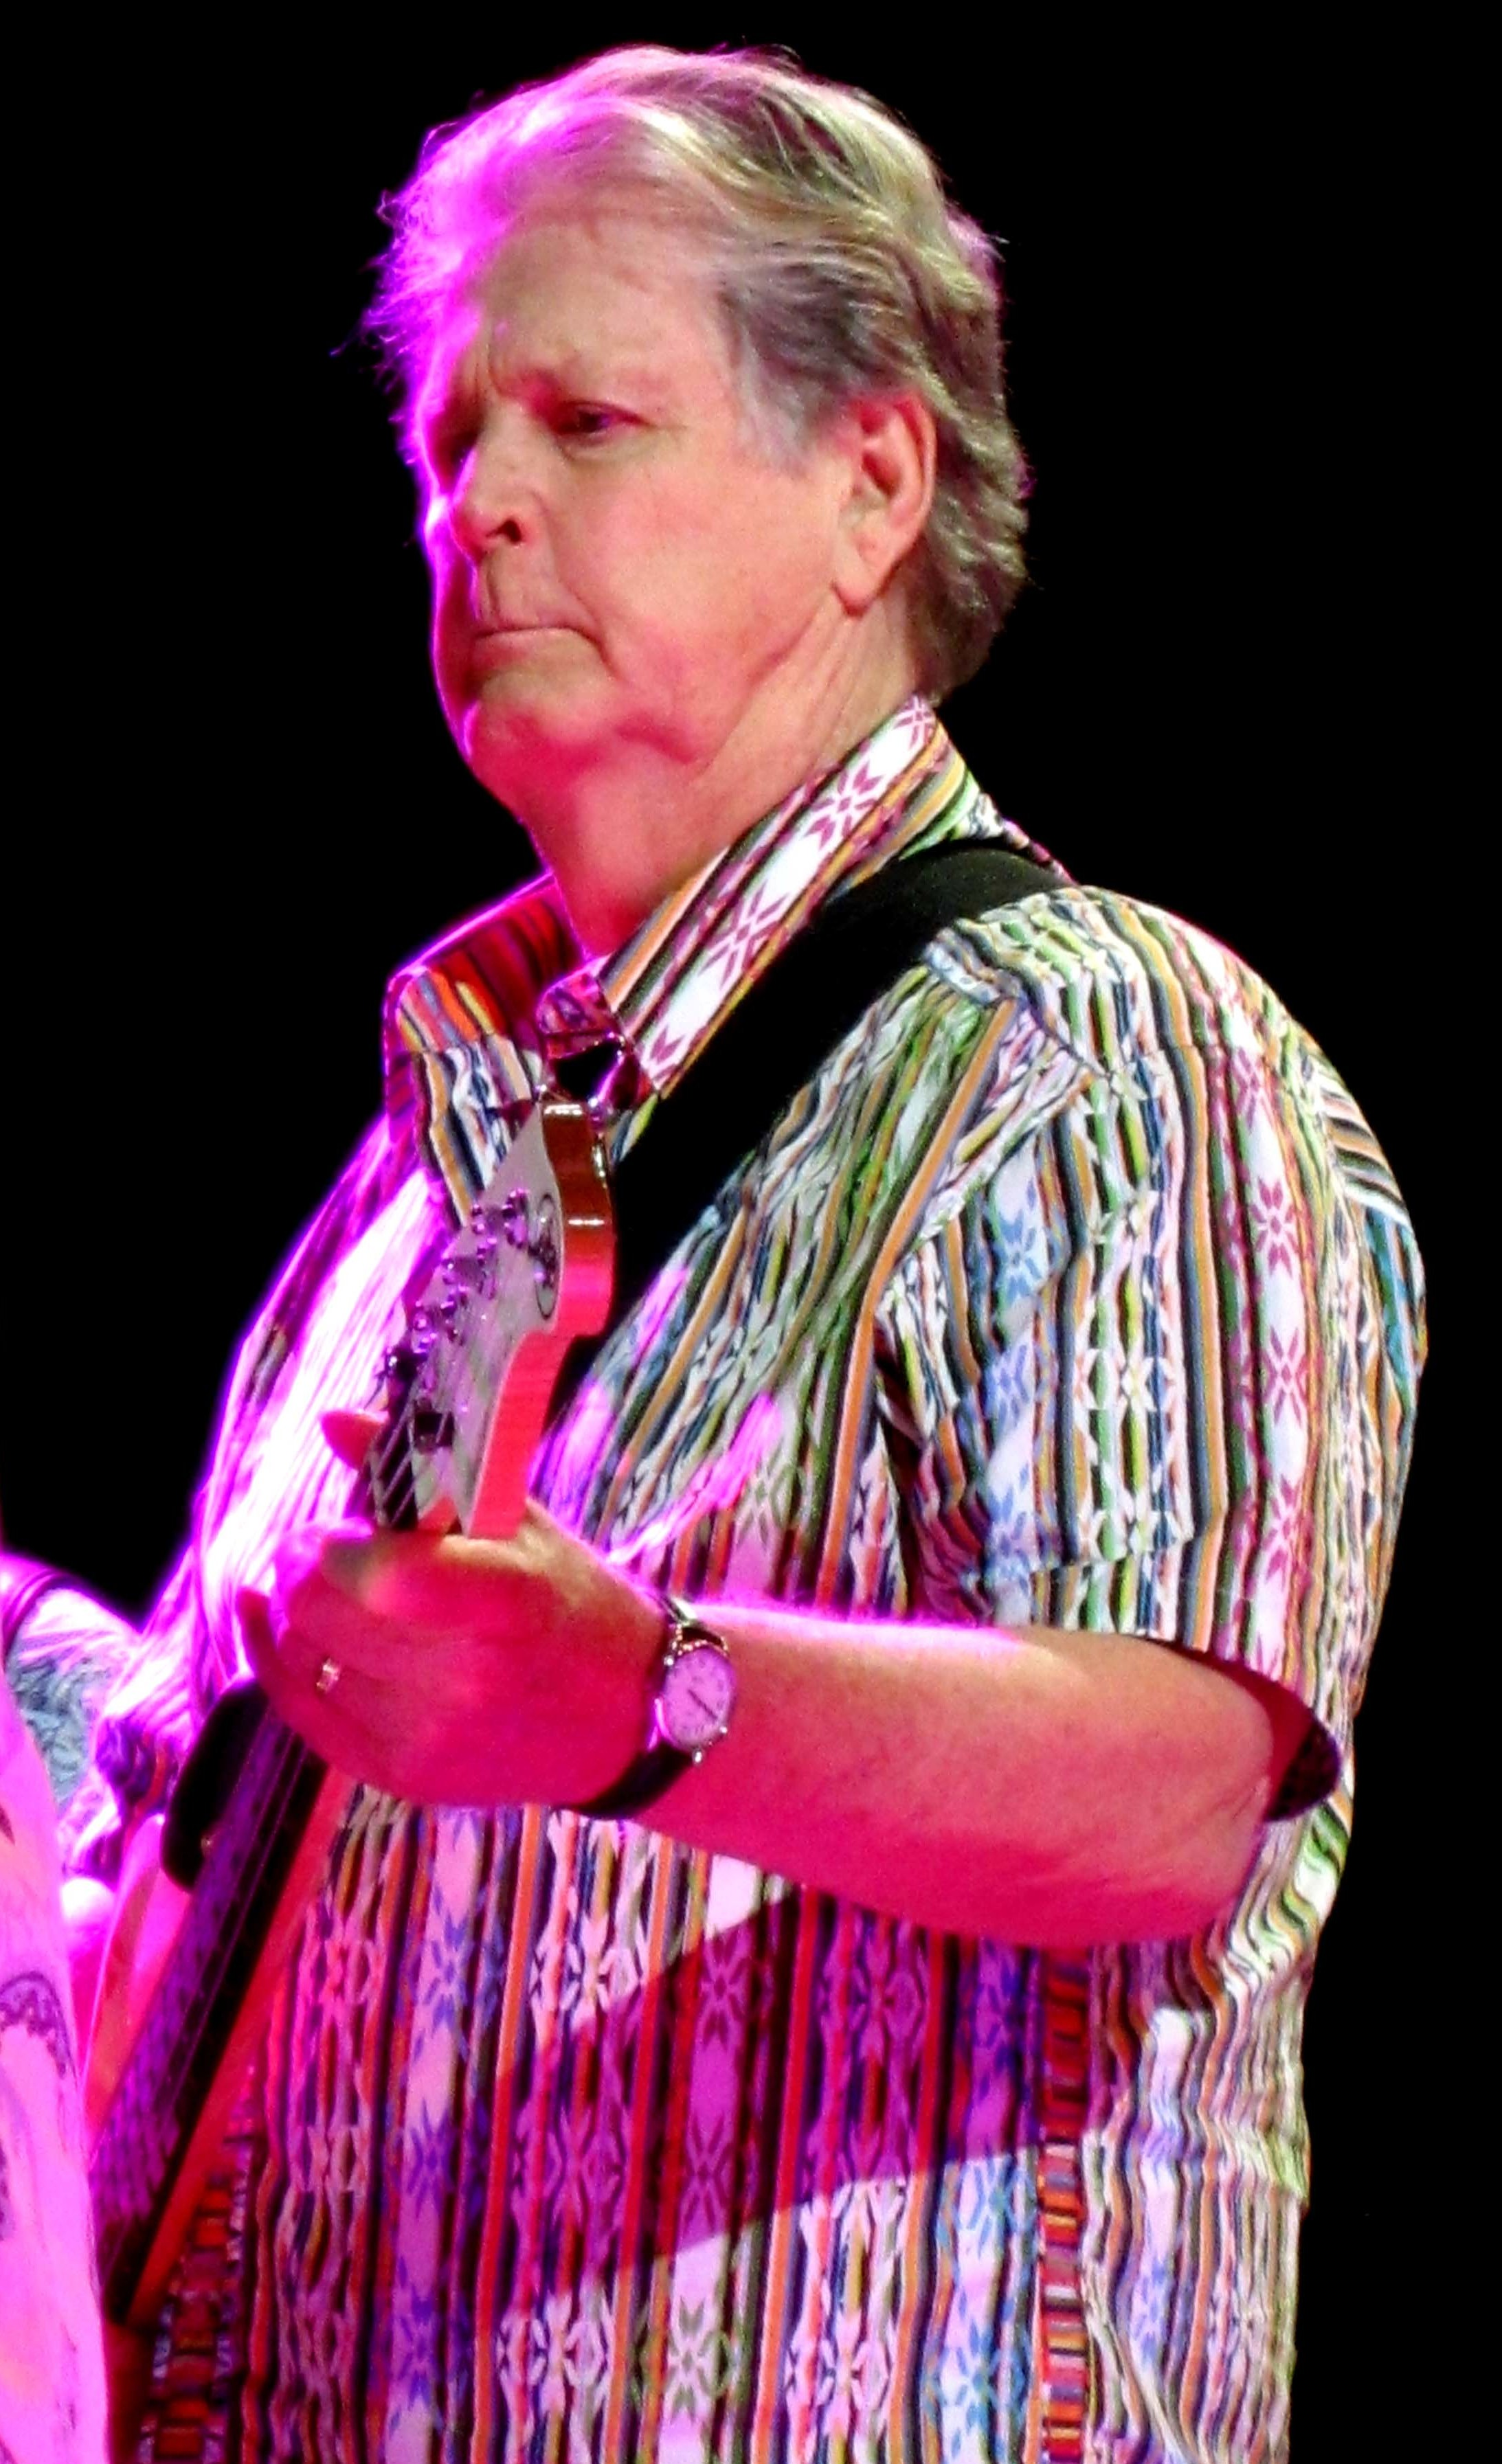 Brian Wilson and Bass 2012 framed by Mike Love (rotated).jpg